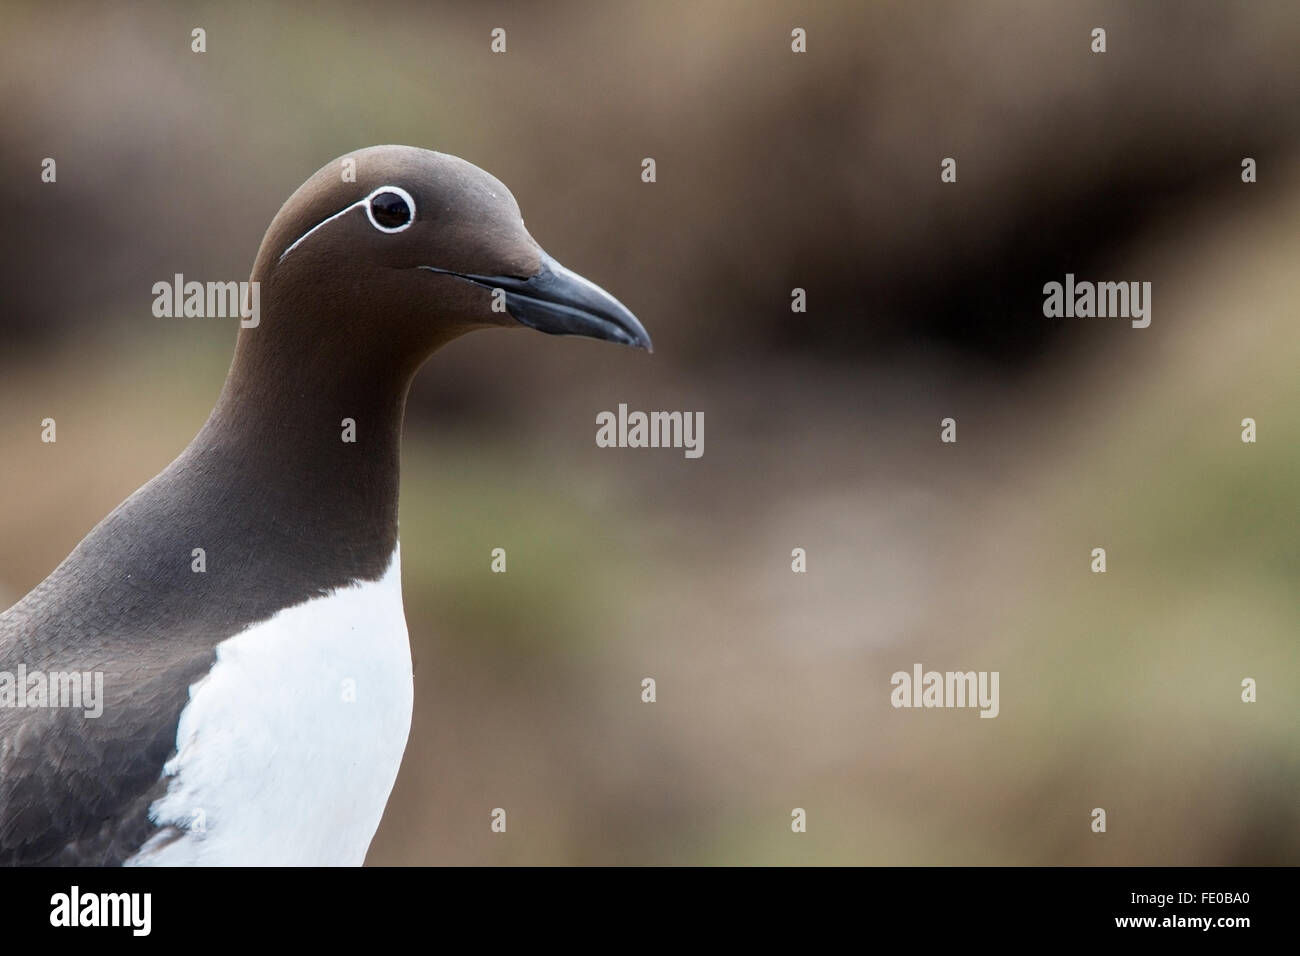 bridled guillemot (Uria aalge) adult standing on cliff showing head and facial pattern, Farne Islands, Northumberland, Stock Photo